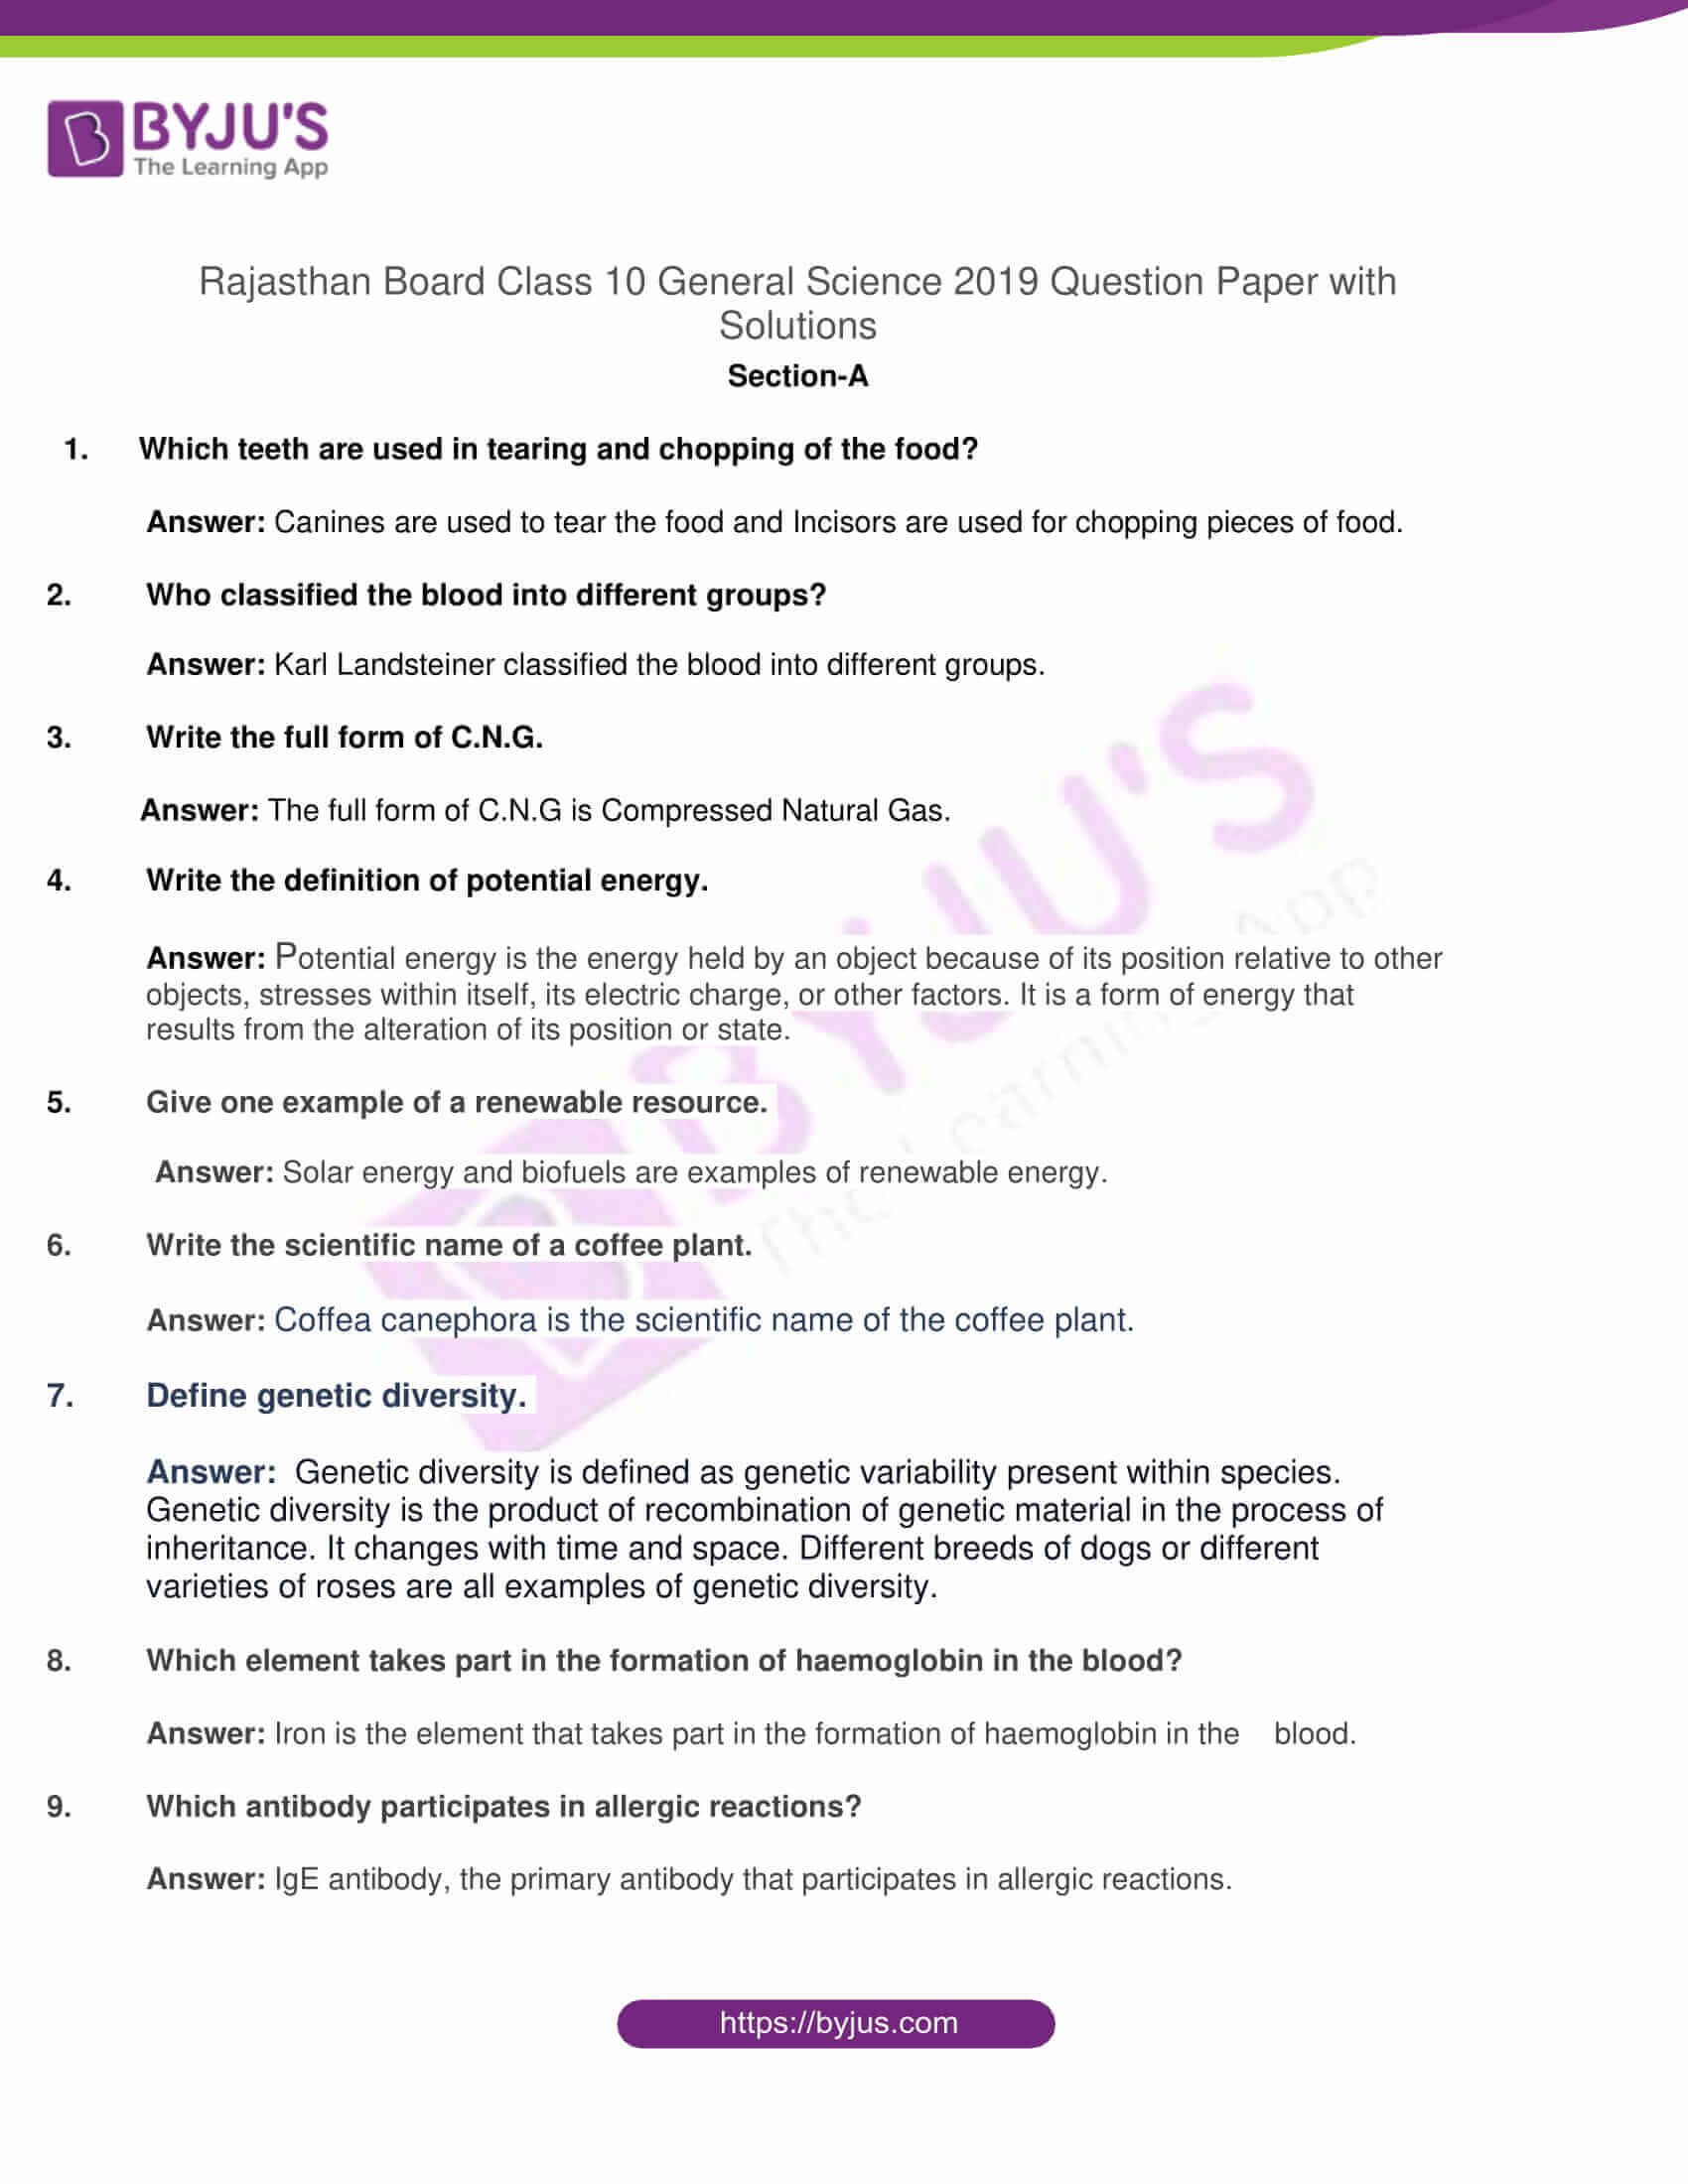 rajasthan board class 10 general science 2019 solutions 01